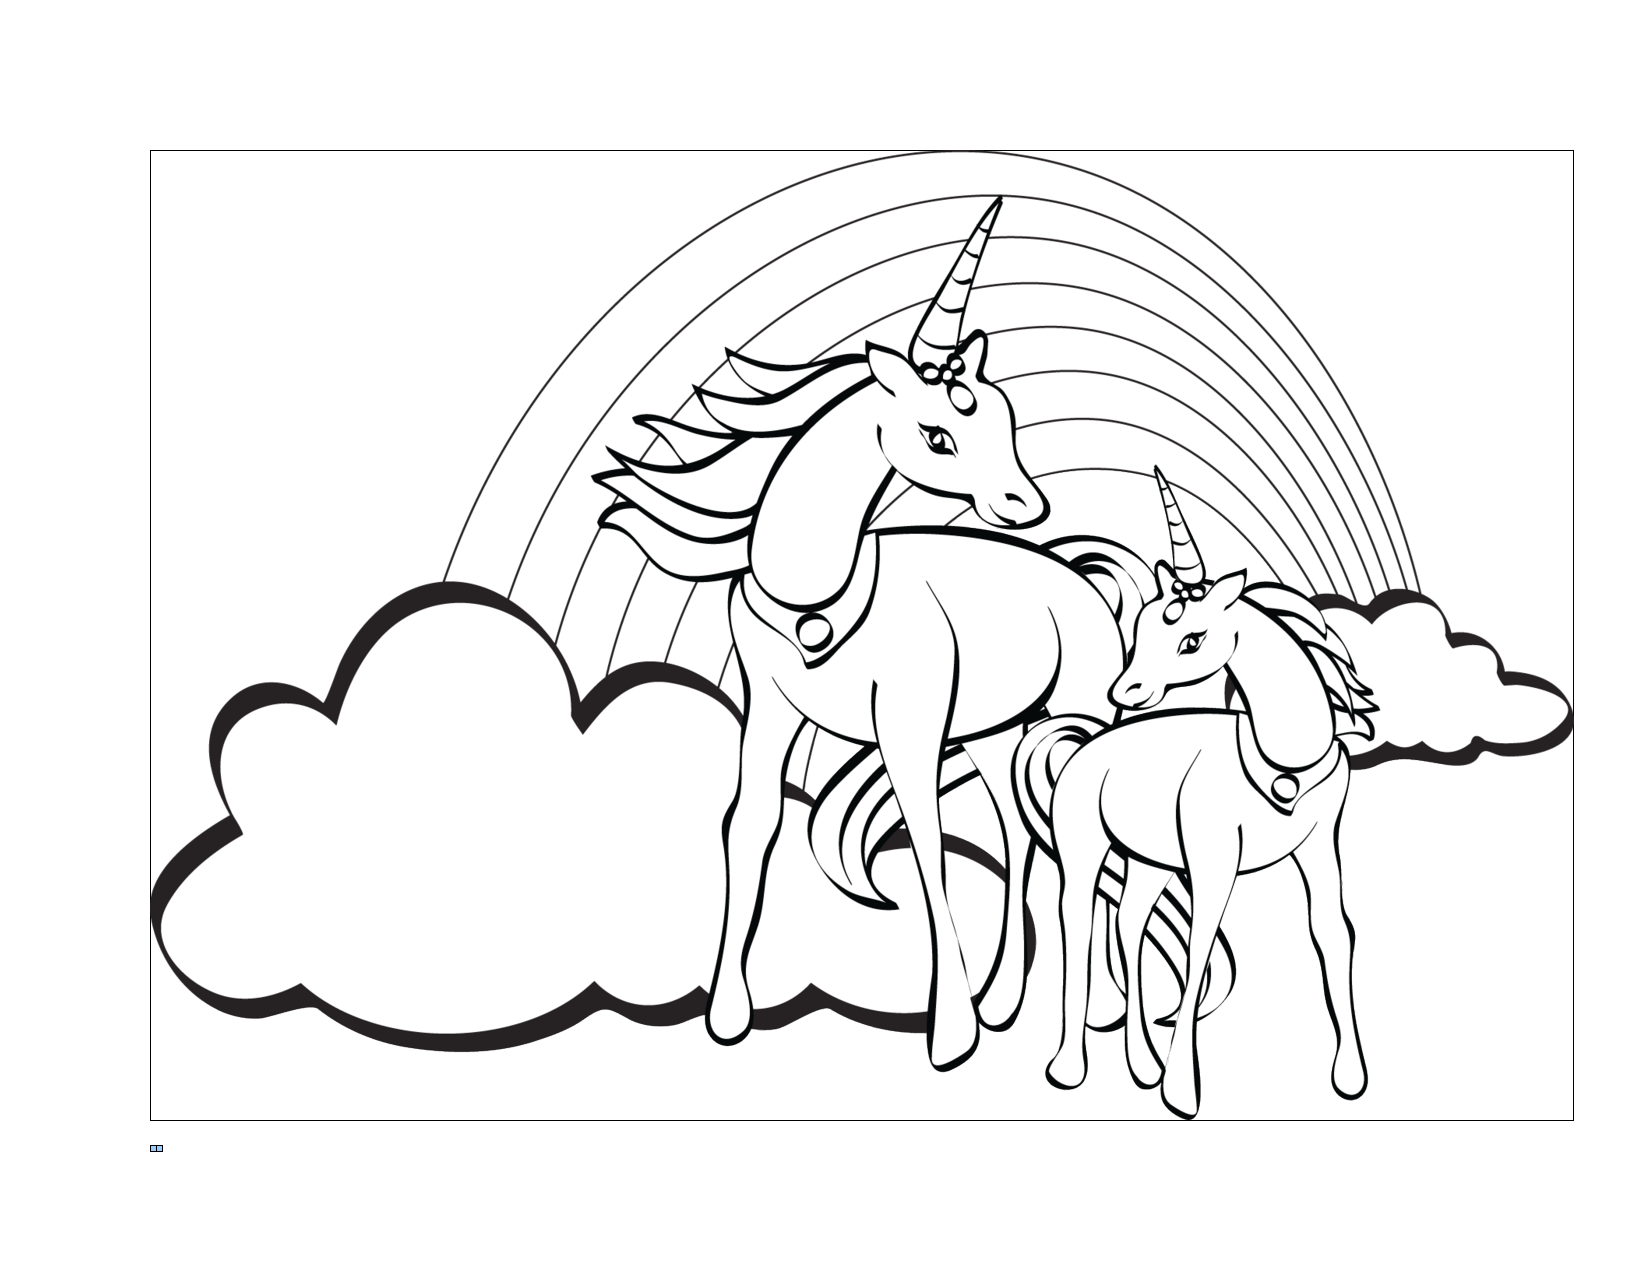 unicorn coloring sheets printable print download unicorn coloring pages for children sheets printable unicorn coloring